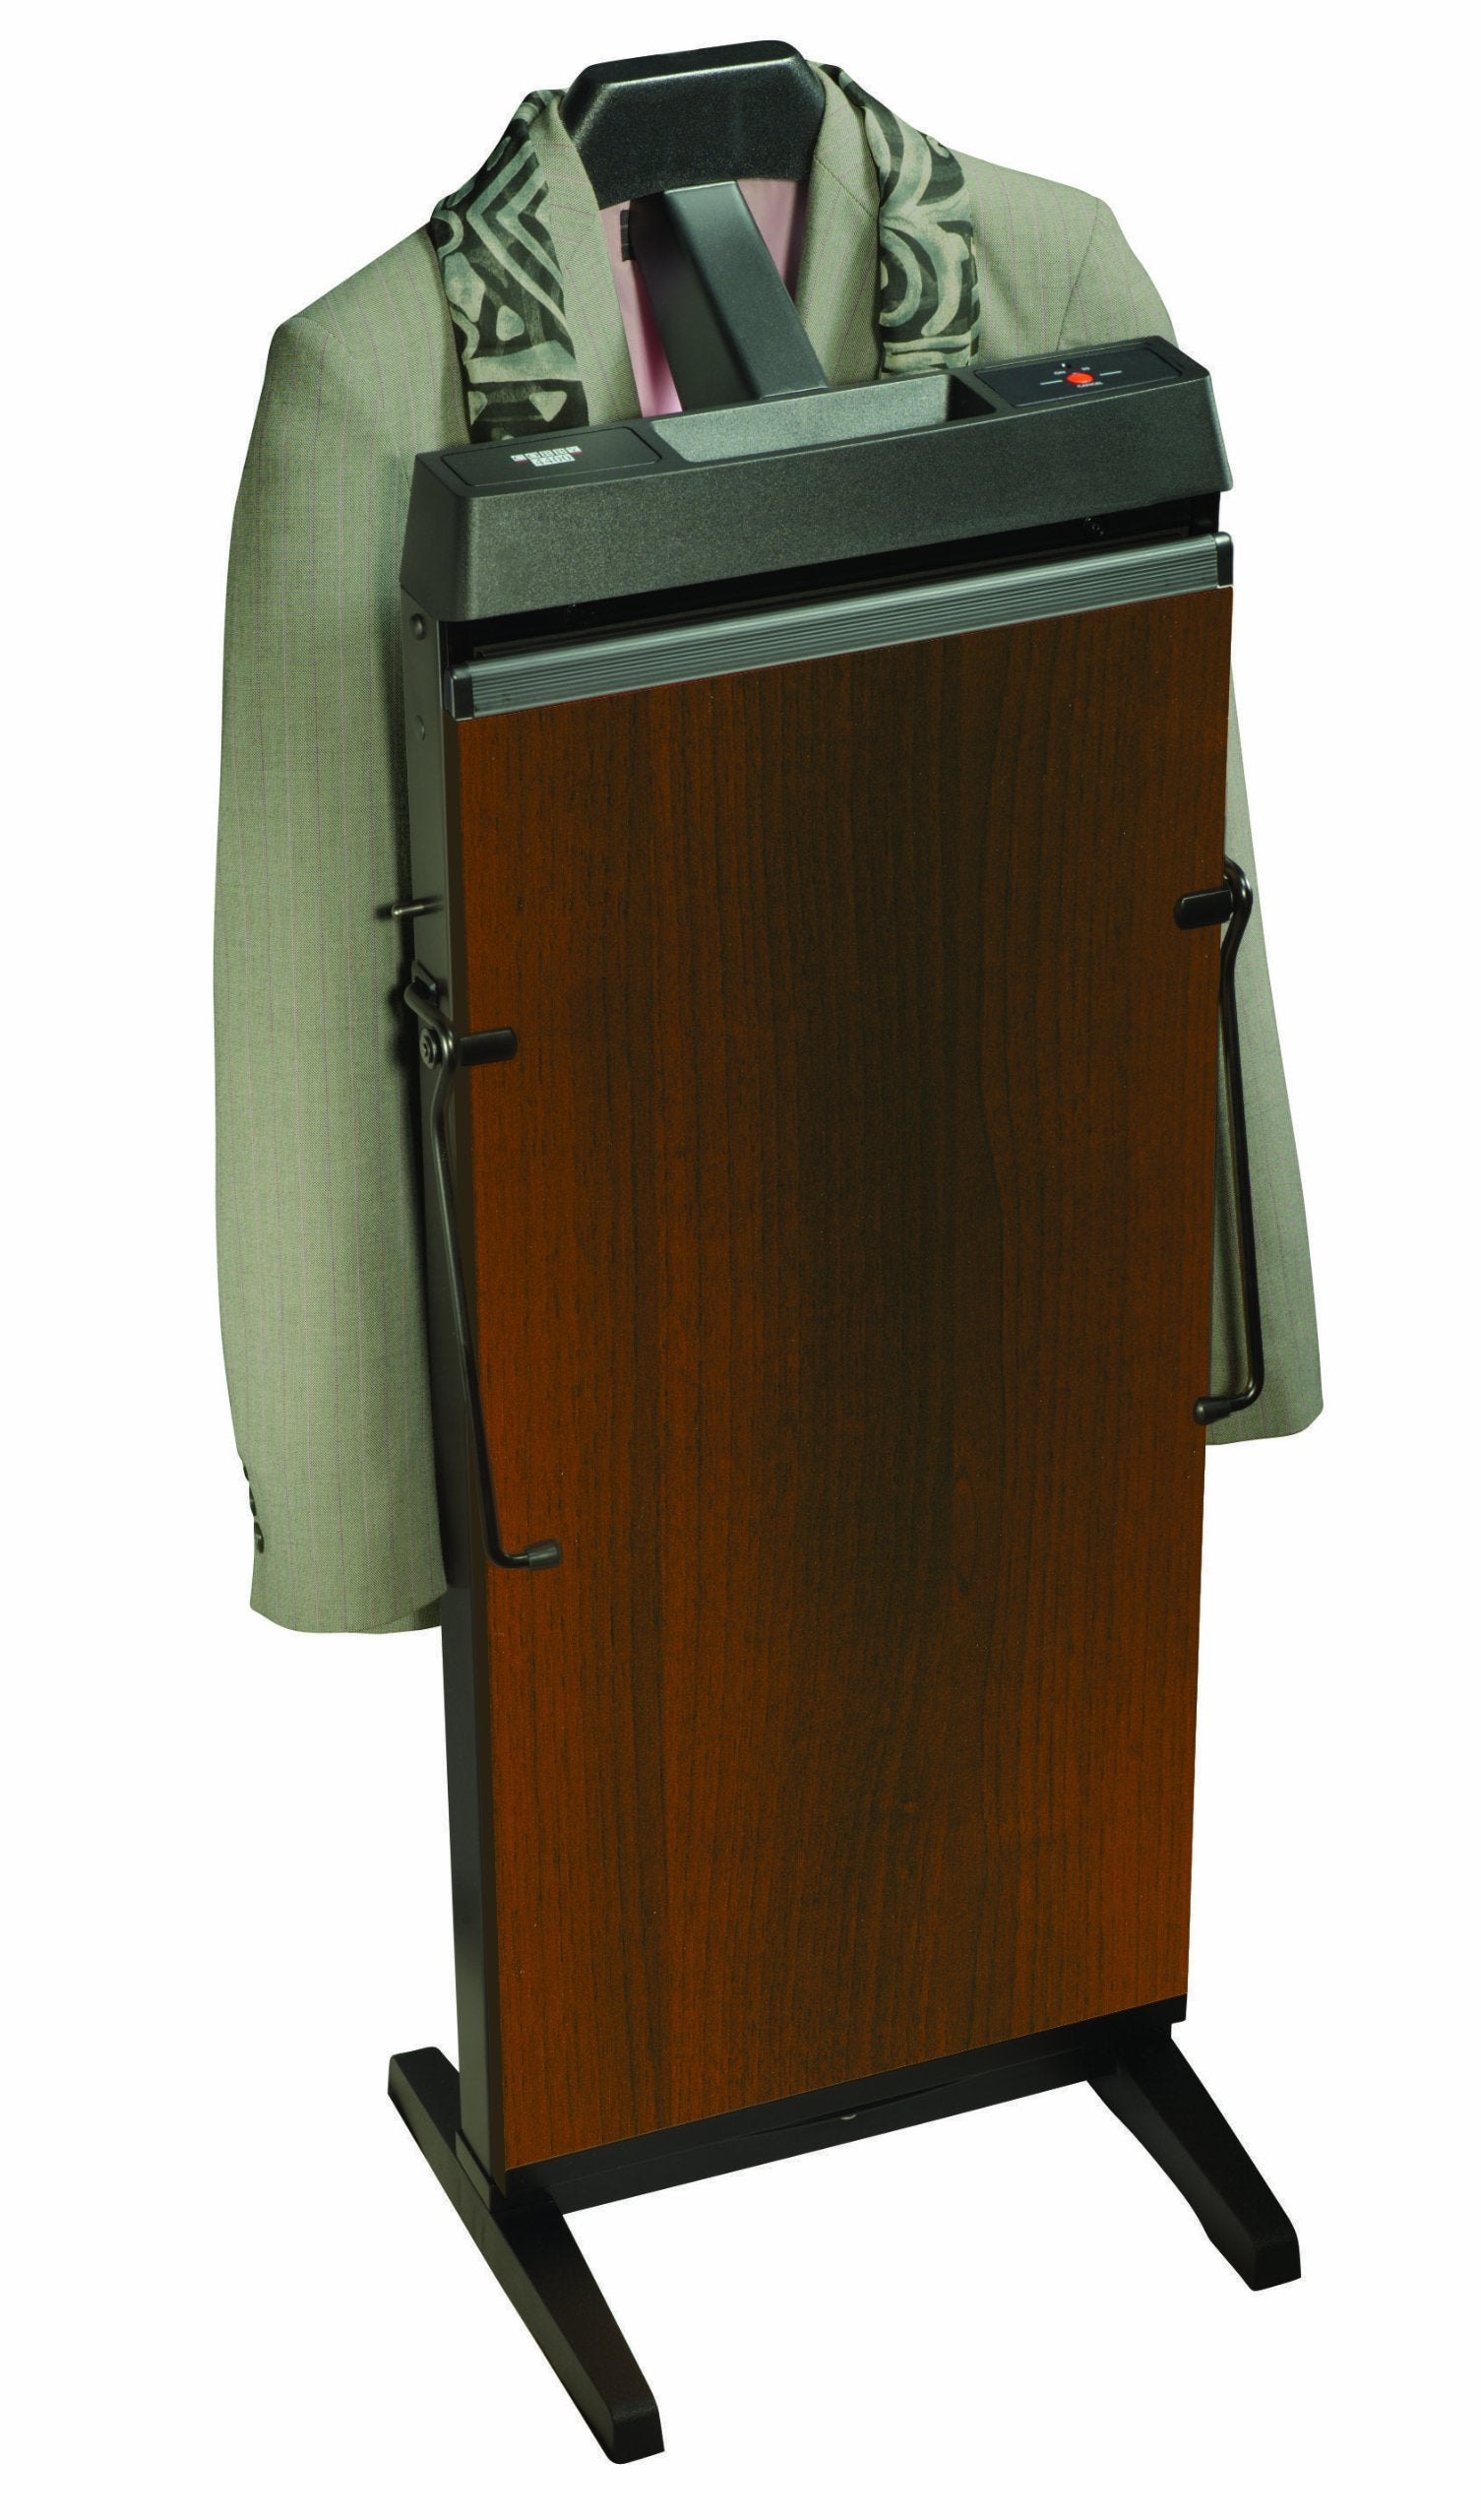 Corby Jerdon 3300W 30 mins Cycle Pants Press with Automatic Shut Down and Manual Cancel Options, Walnut Finish